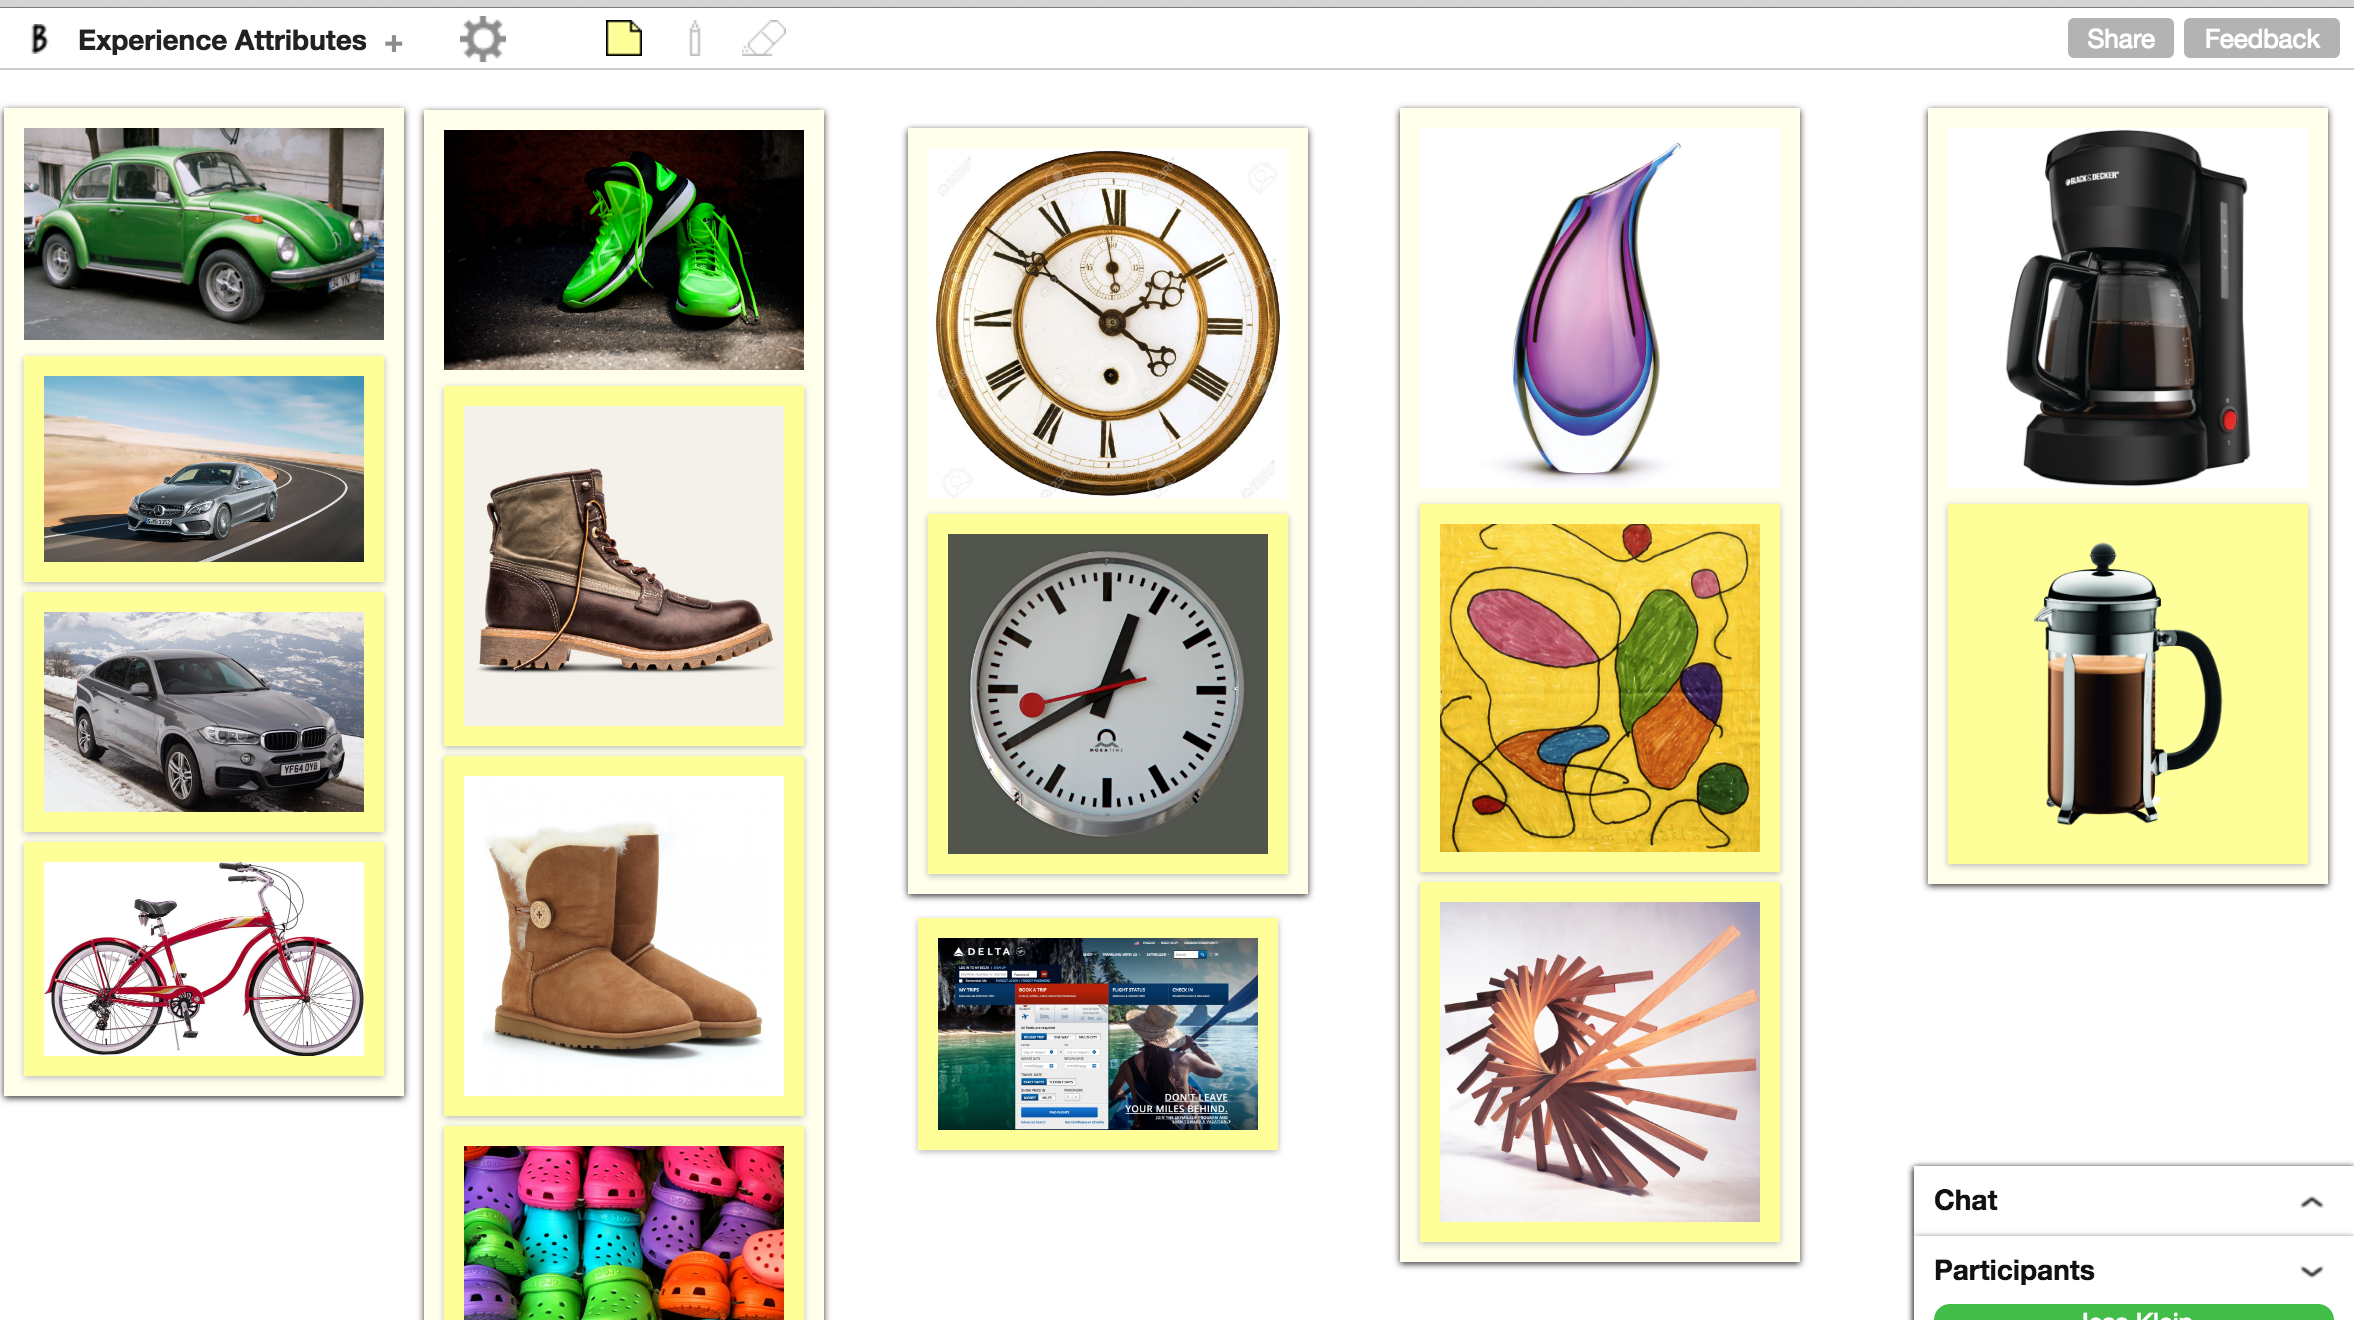 identify experience attributes with an image matrix on BoardThing